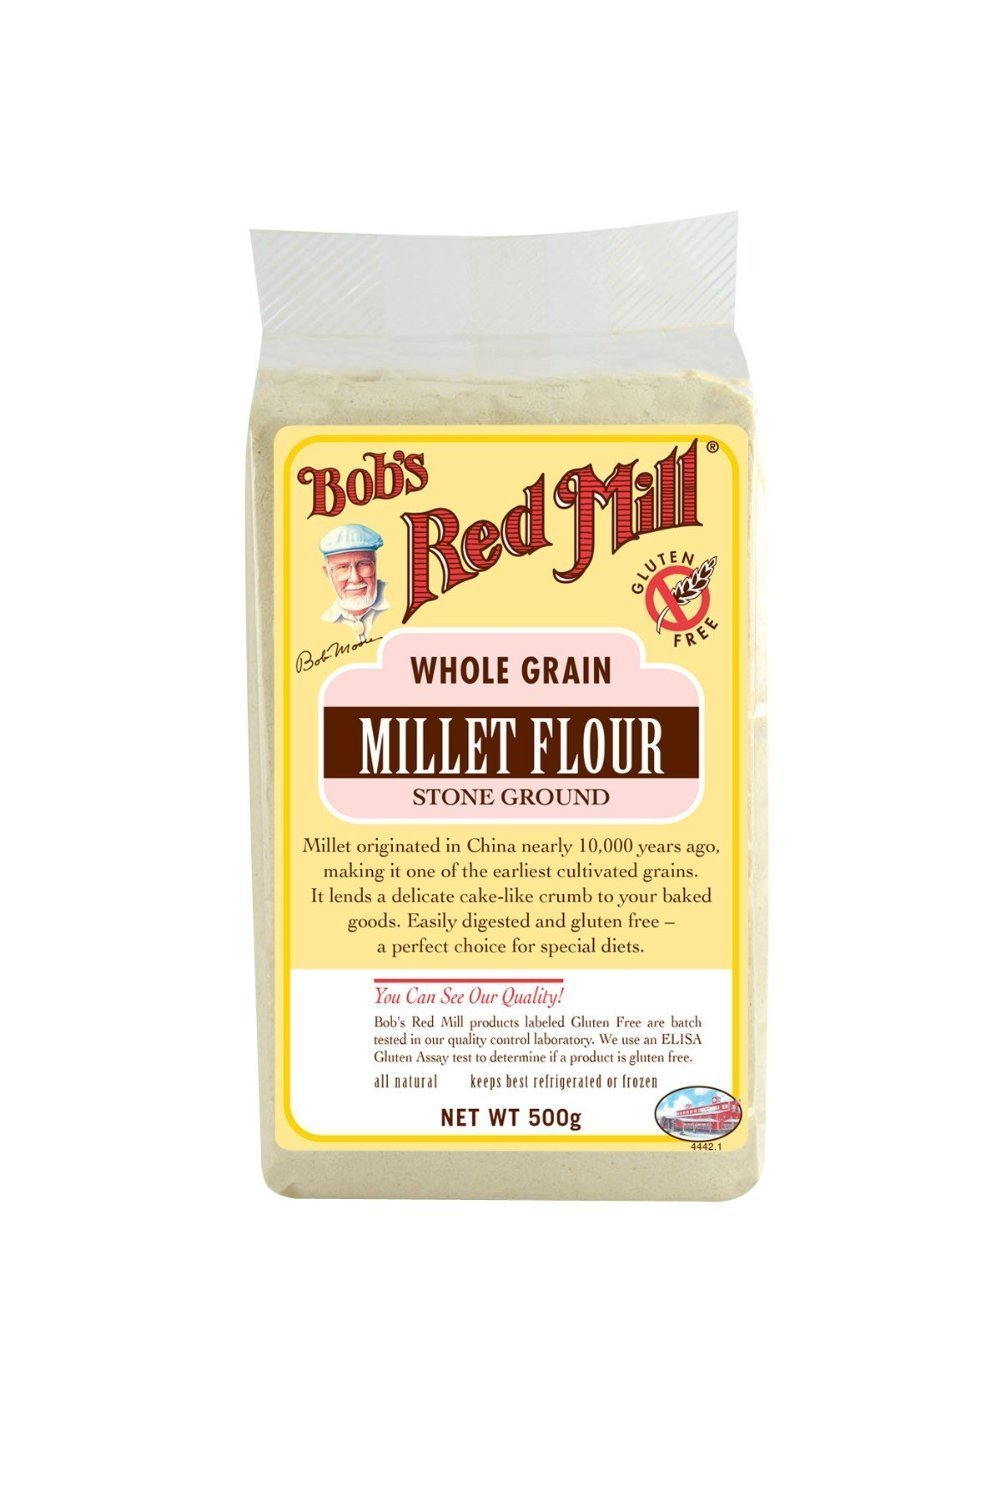 Bob's Red Mill - Whole Grain Millet Flour Stone Ground - 500g by Bob's Red Mill